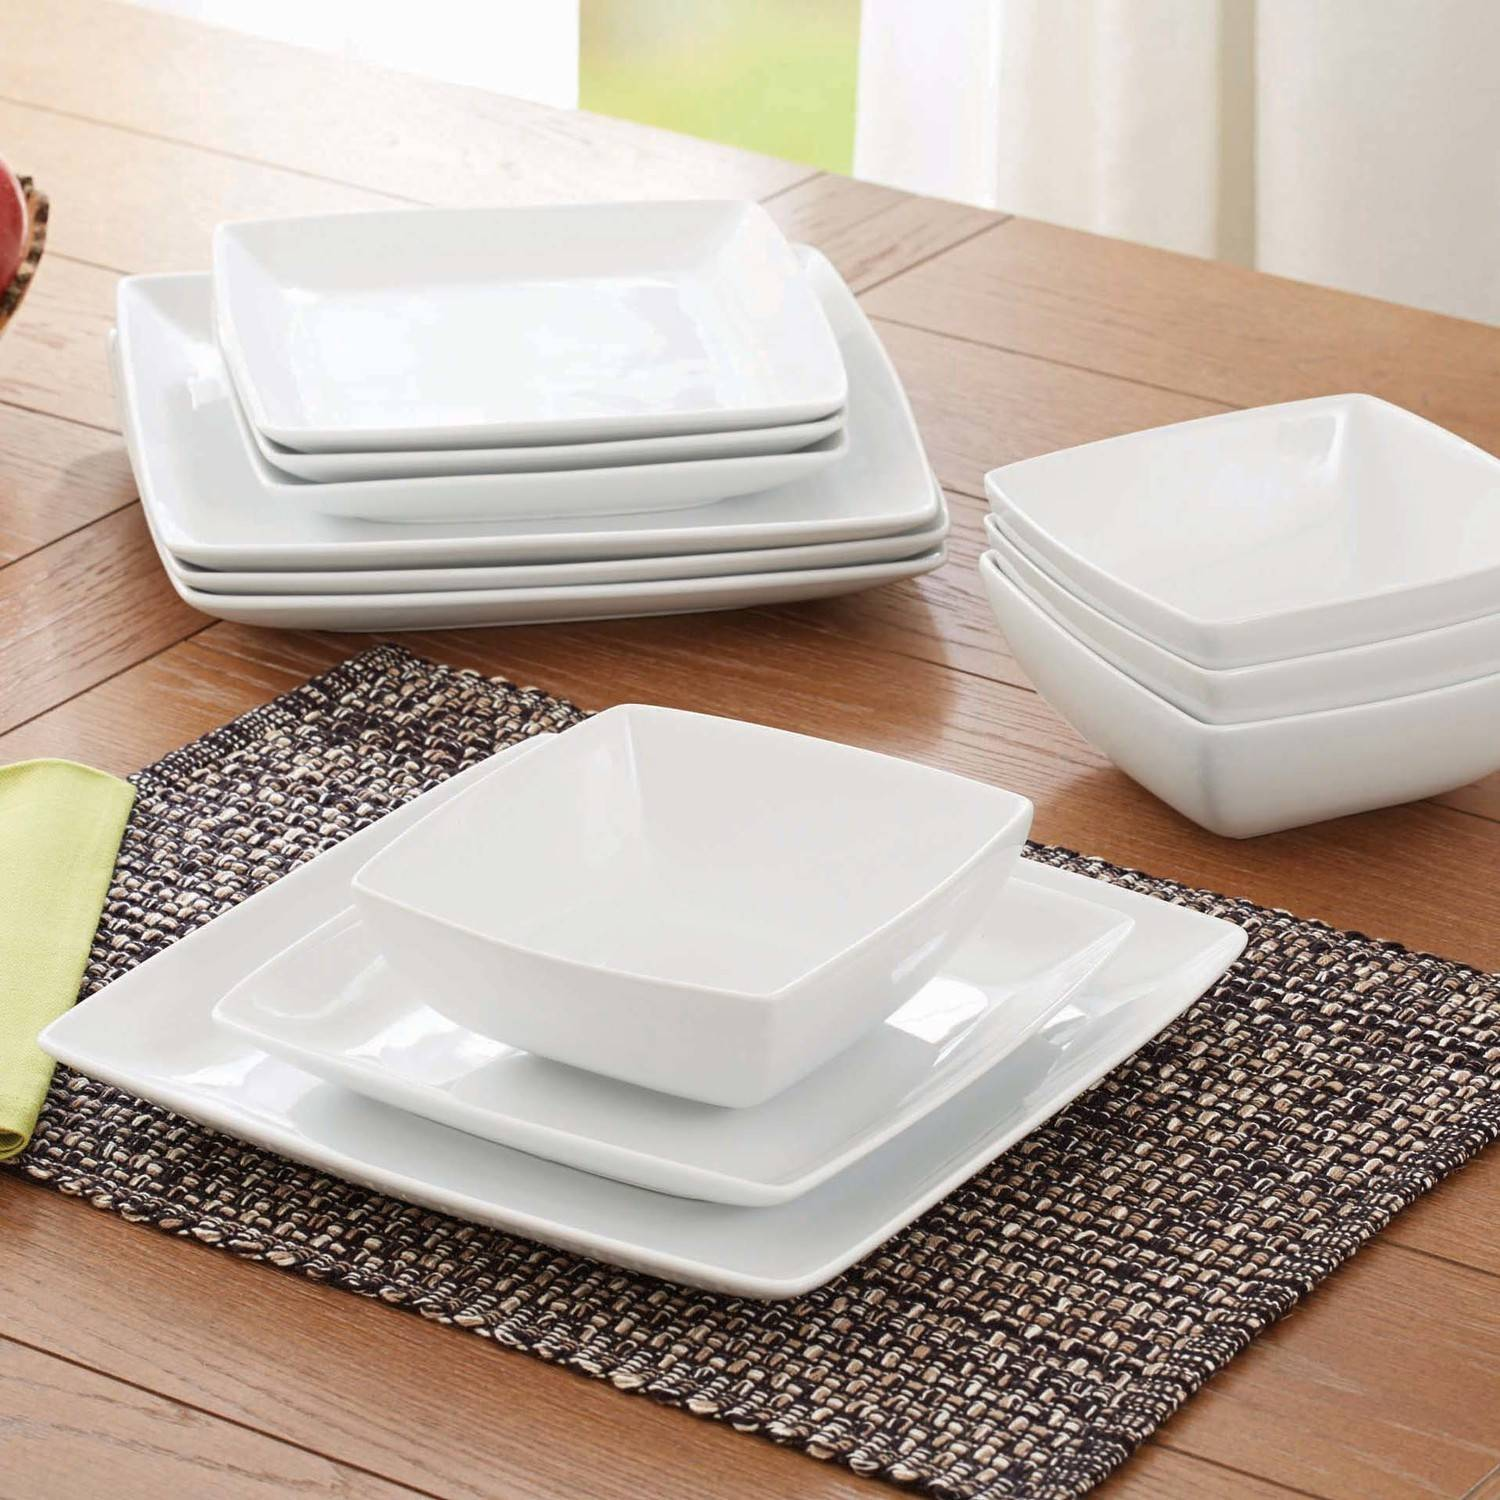 Better Homes and Gardens Porcelain Coupe Square 12